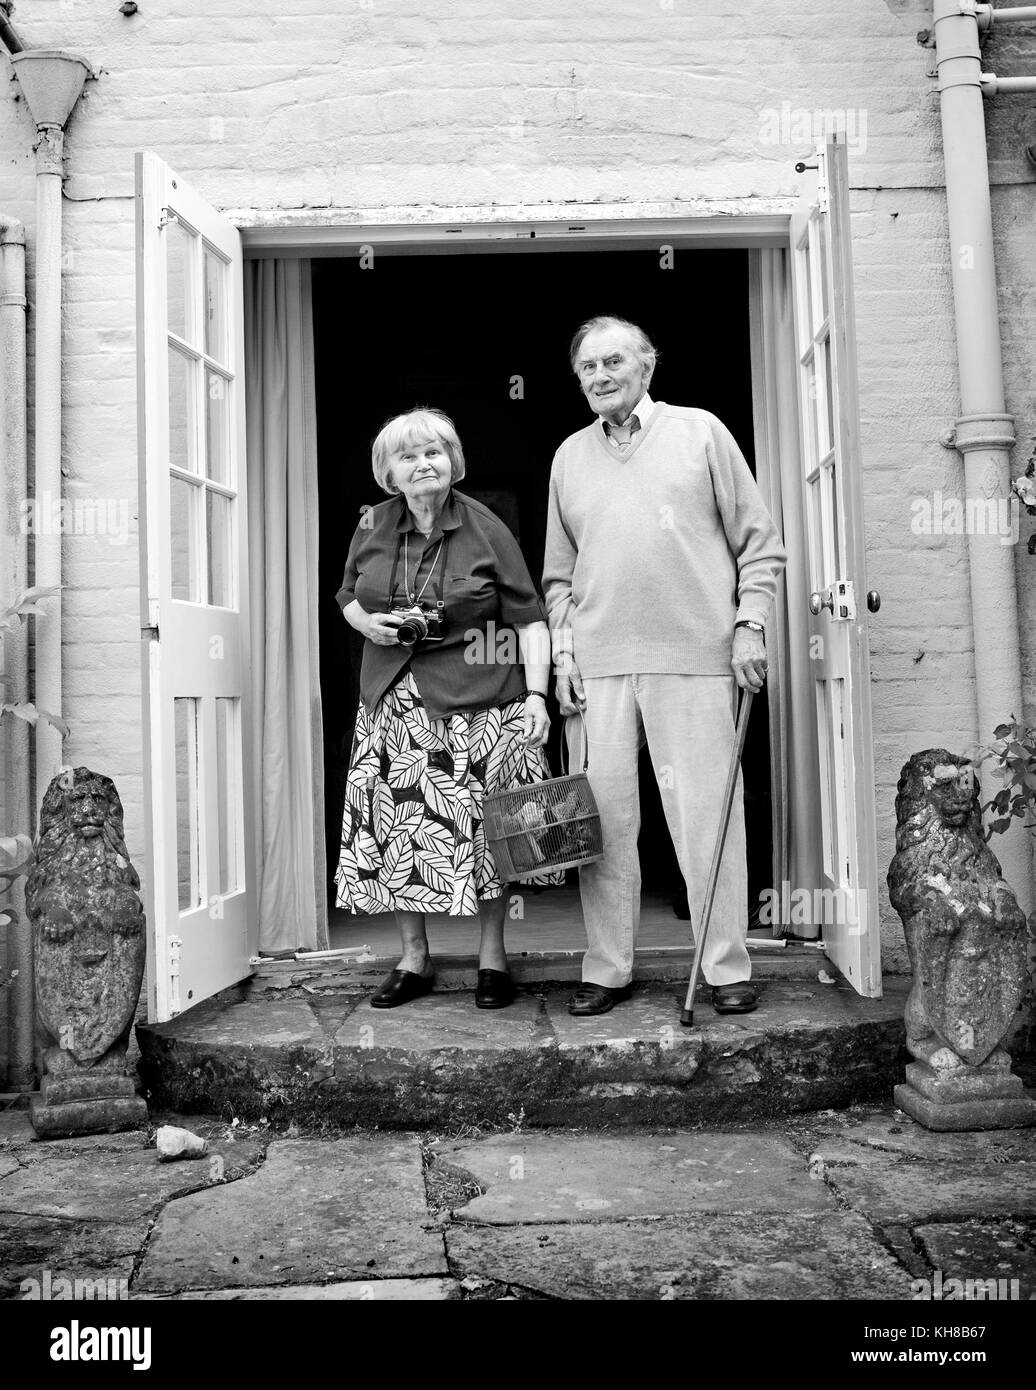 Photographer Jane Bown (13 March 1925 – 21 December 2014) and cartoonist/ illustrator Haro Hodson, B&W portrait - Stock Image